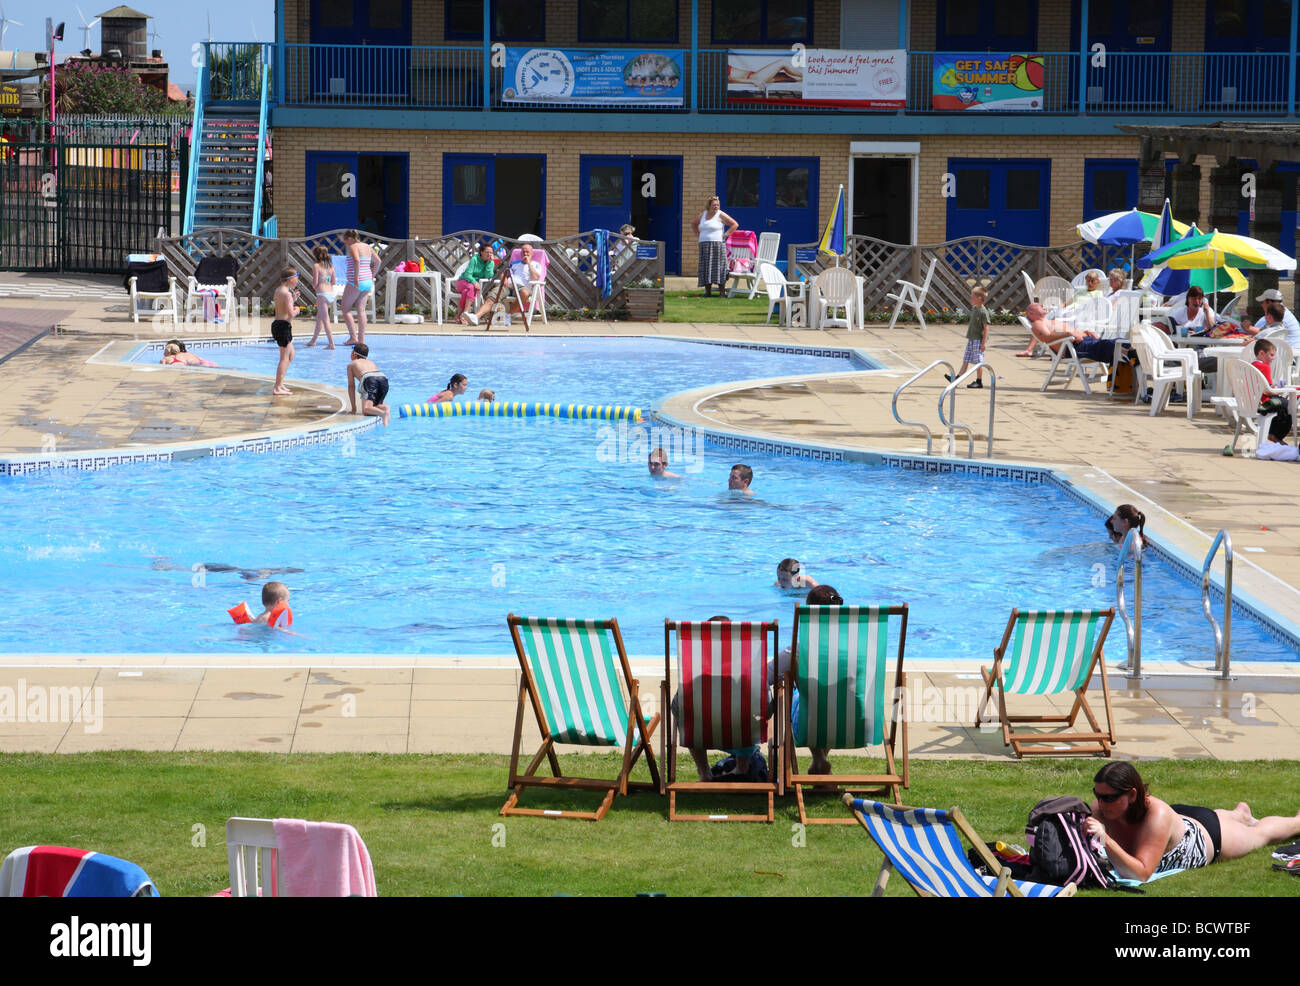 An Outdoor Swimming Pool In Skegness Lincolnshire England U K Stock Photo Royalty Free Image